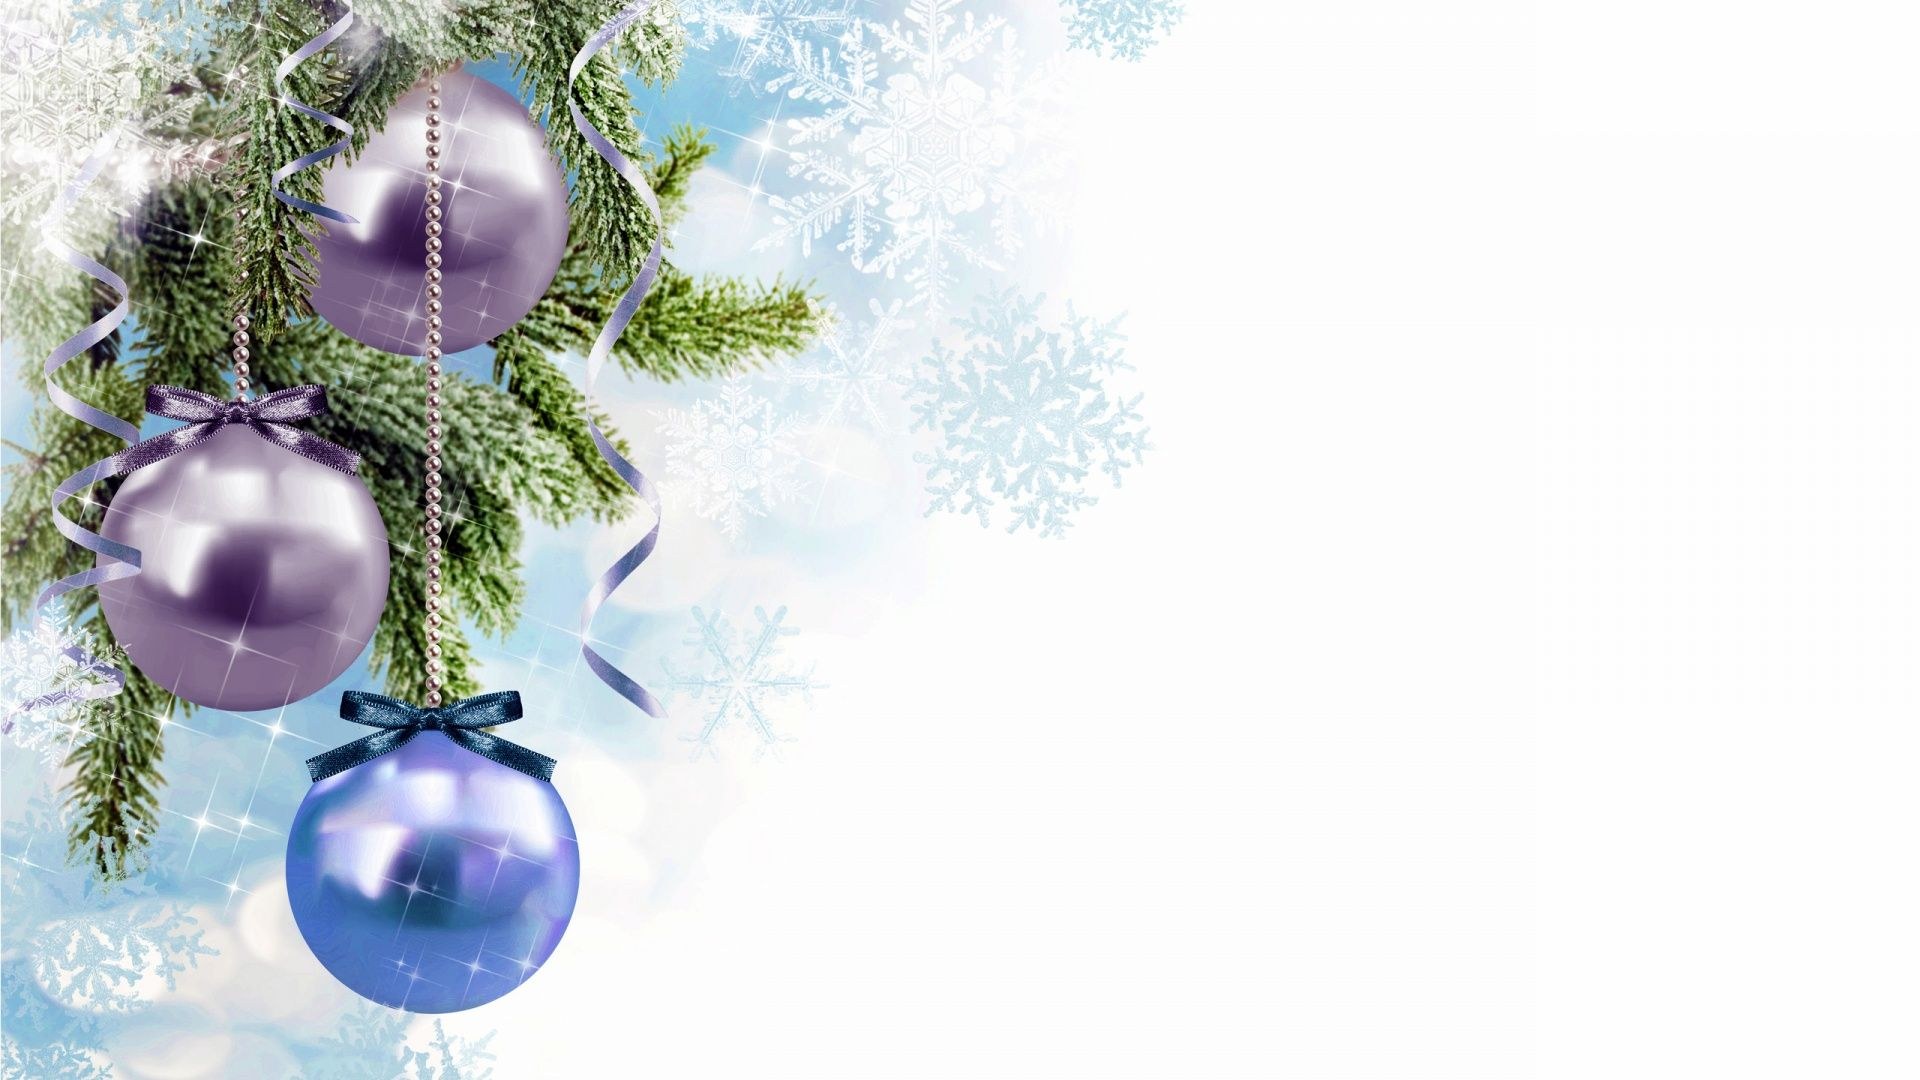 Christmas Decorations Hd 1080p Wallpapers Download Storing Christmas Decorations Christmas Tree Wallpaper Outside Christmas Decorations